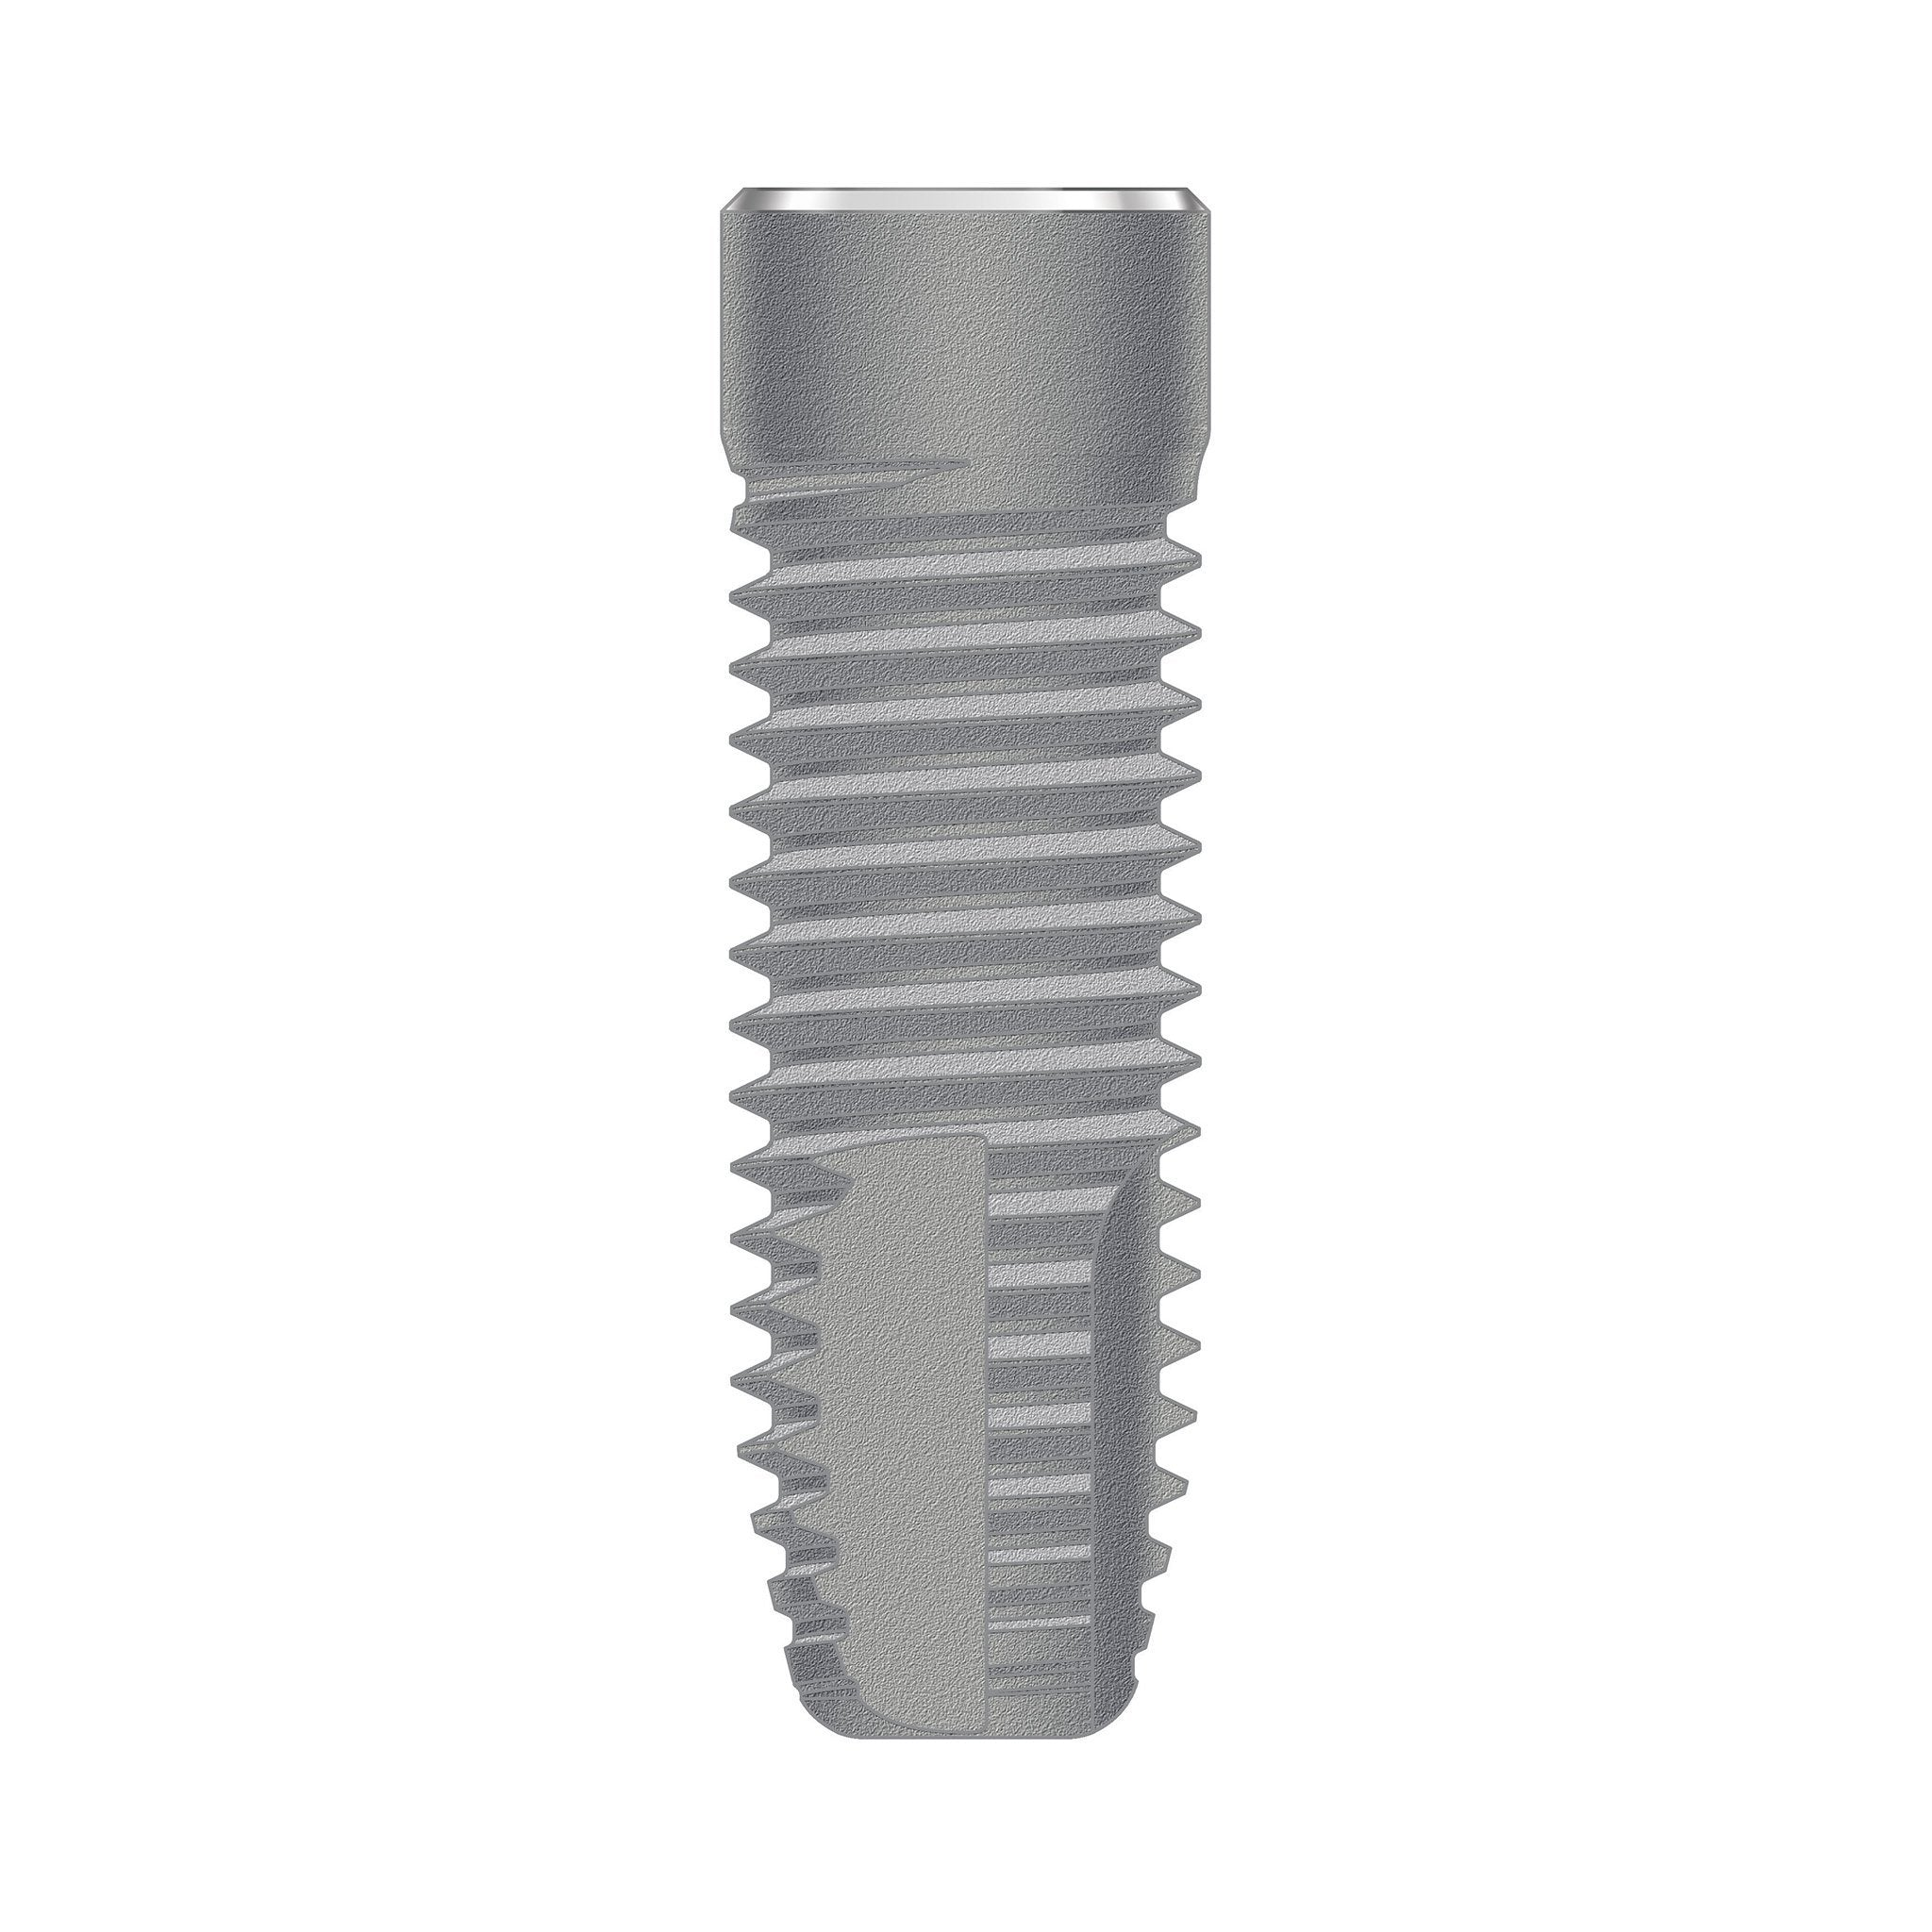 PrimaConnex® Straight Implant RD Ø 5.0 x 13mm | K3